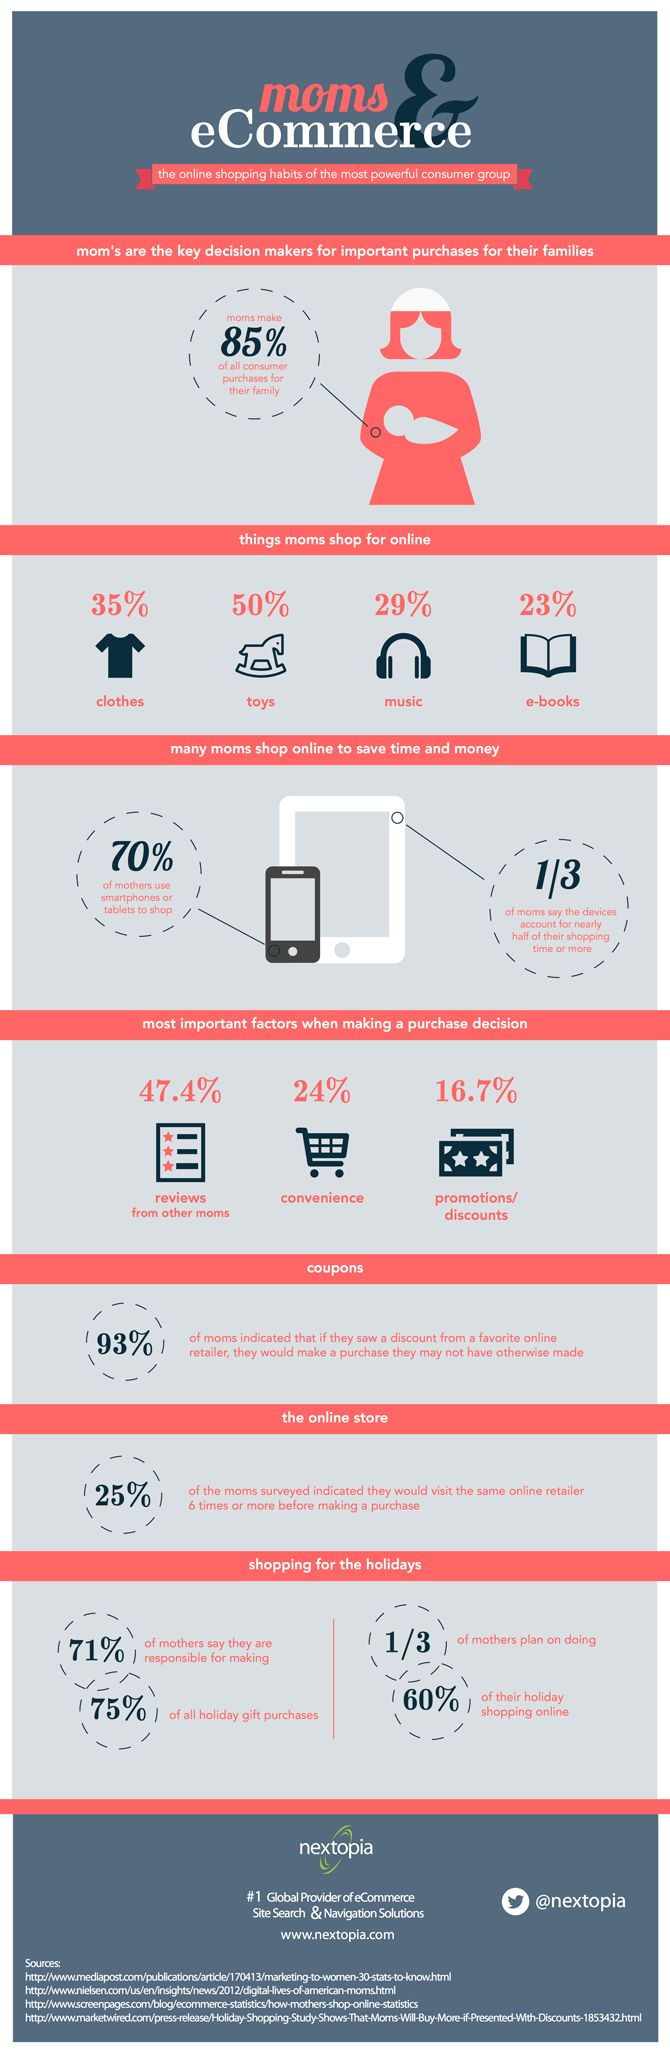 In honour of Mother's Day approaching, this infographic shows how Moms shop online and what they are searching for! ‪#‎ecommerce‬ ‪#‎infographic‬ ‪#‎mothersday‬ ‪#‎shopping‬ ‪#‎online‬ ‪#‎retail‬ ‪#‎mom‬ ‪#‎blog‬